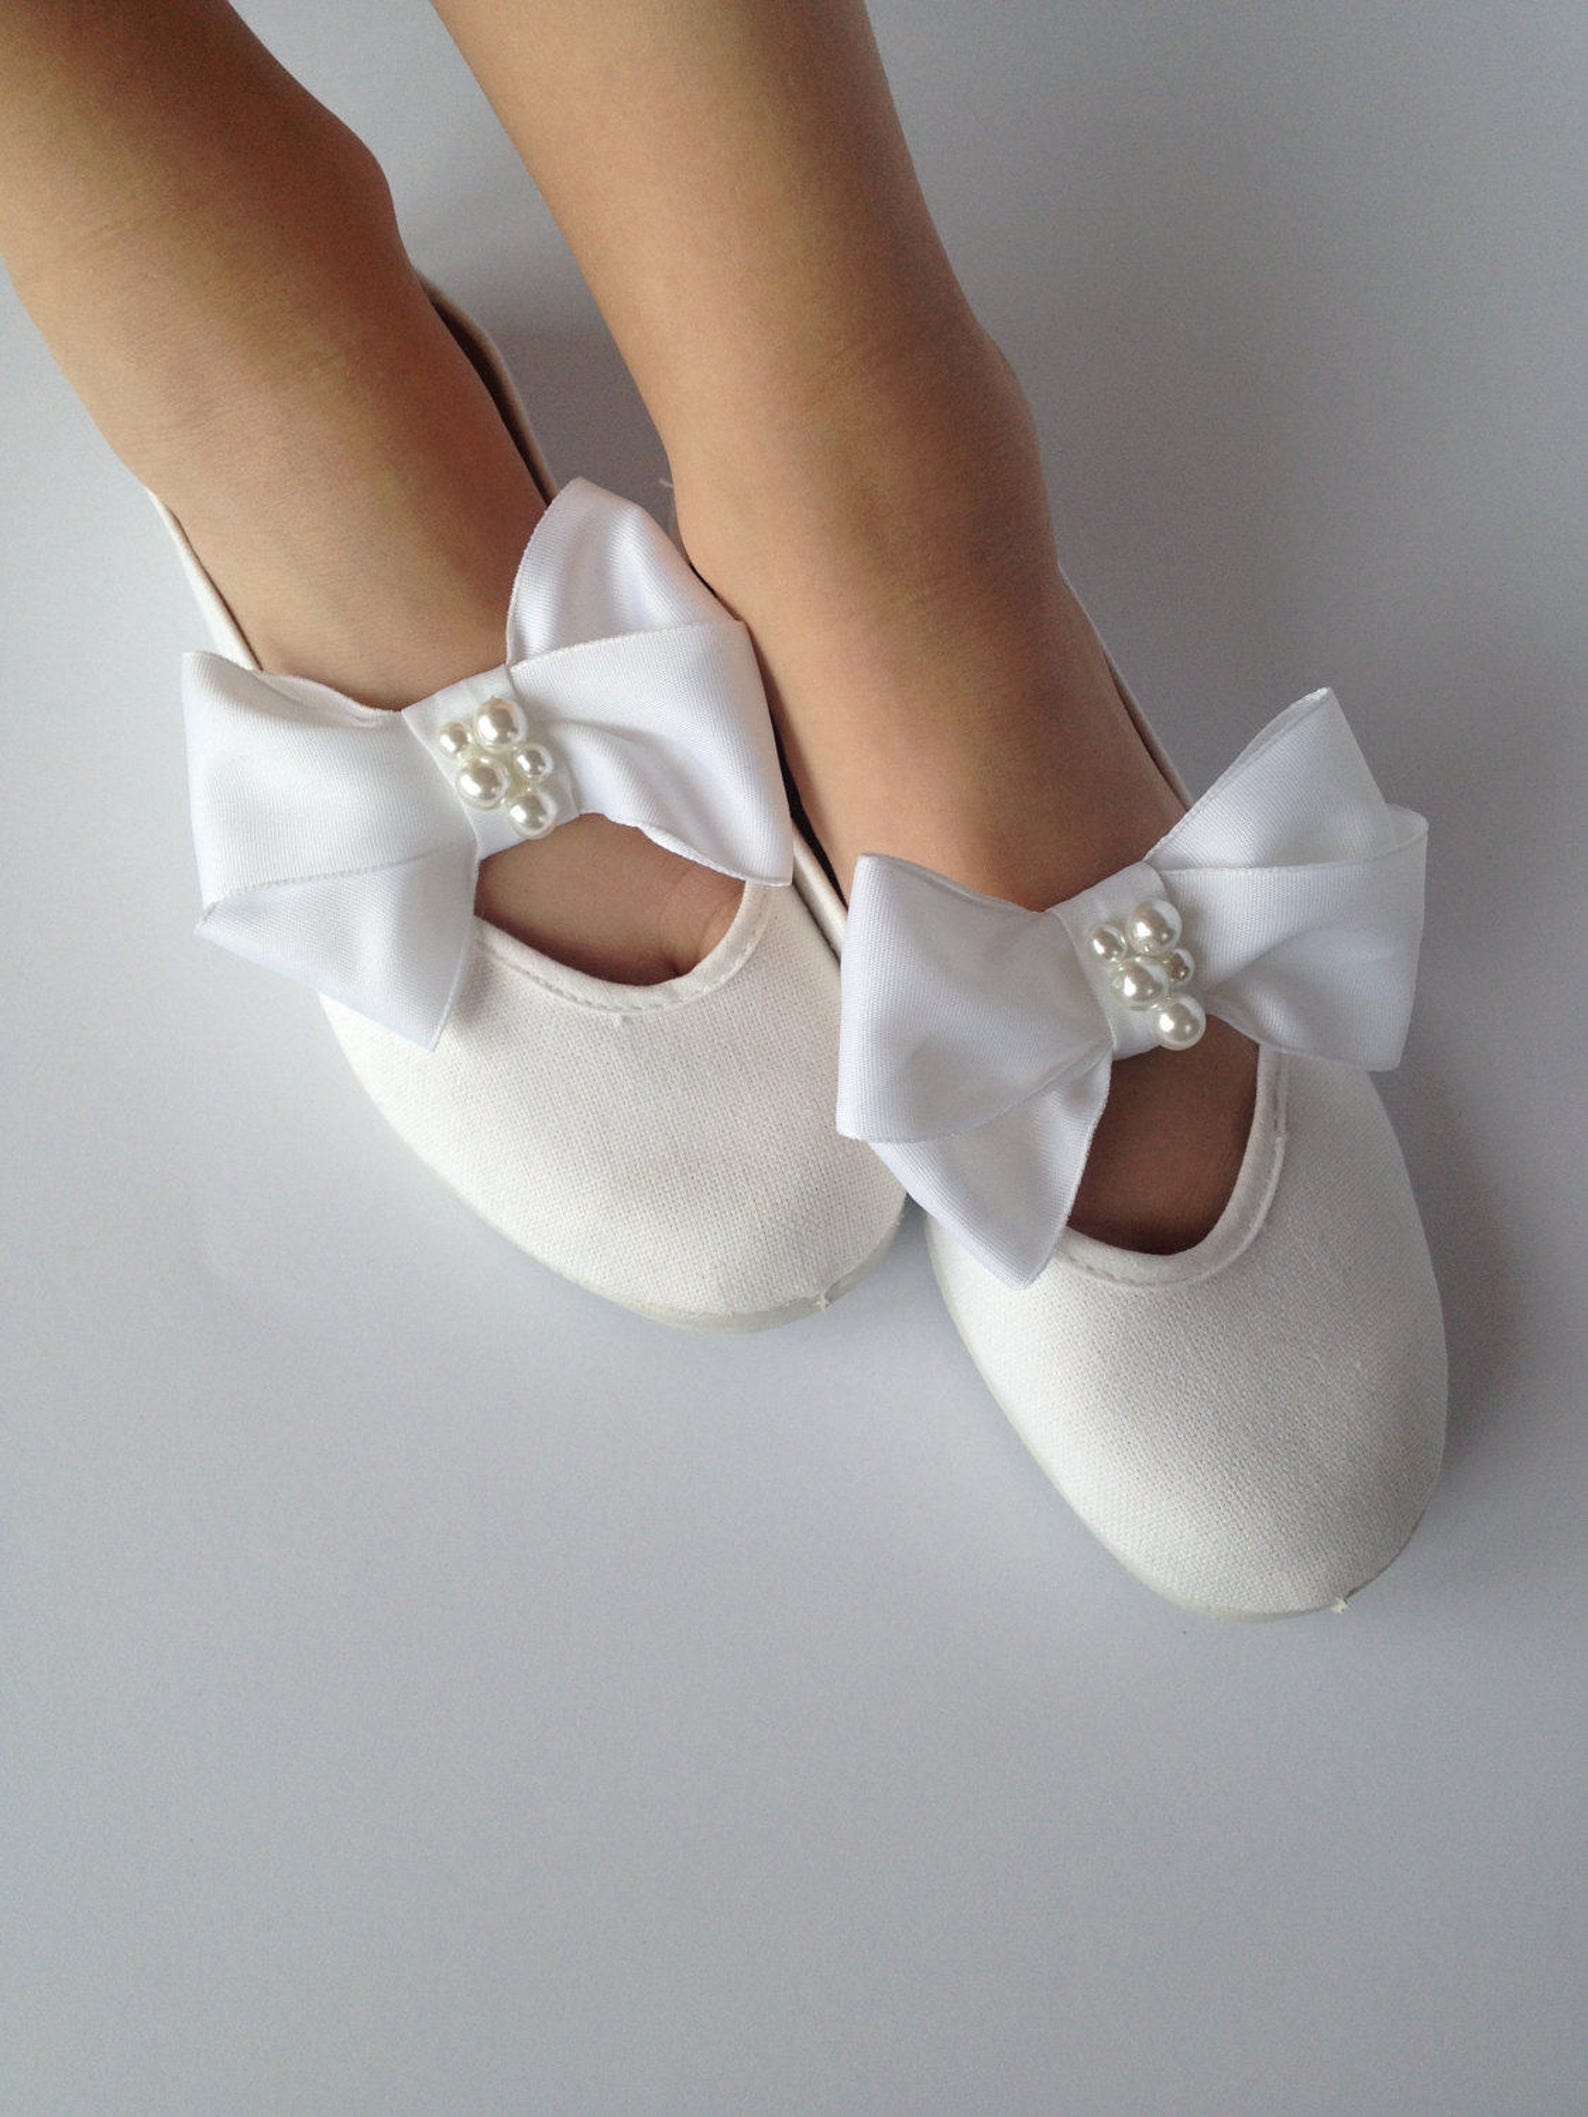 girls shoes,mary jane shoes,wedding ballet flats,flower girl shoes,toddler shoes,bridal shoes,summer dress shoes,wedding flats,w